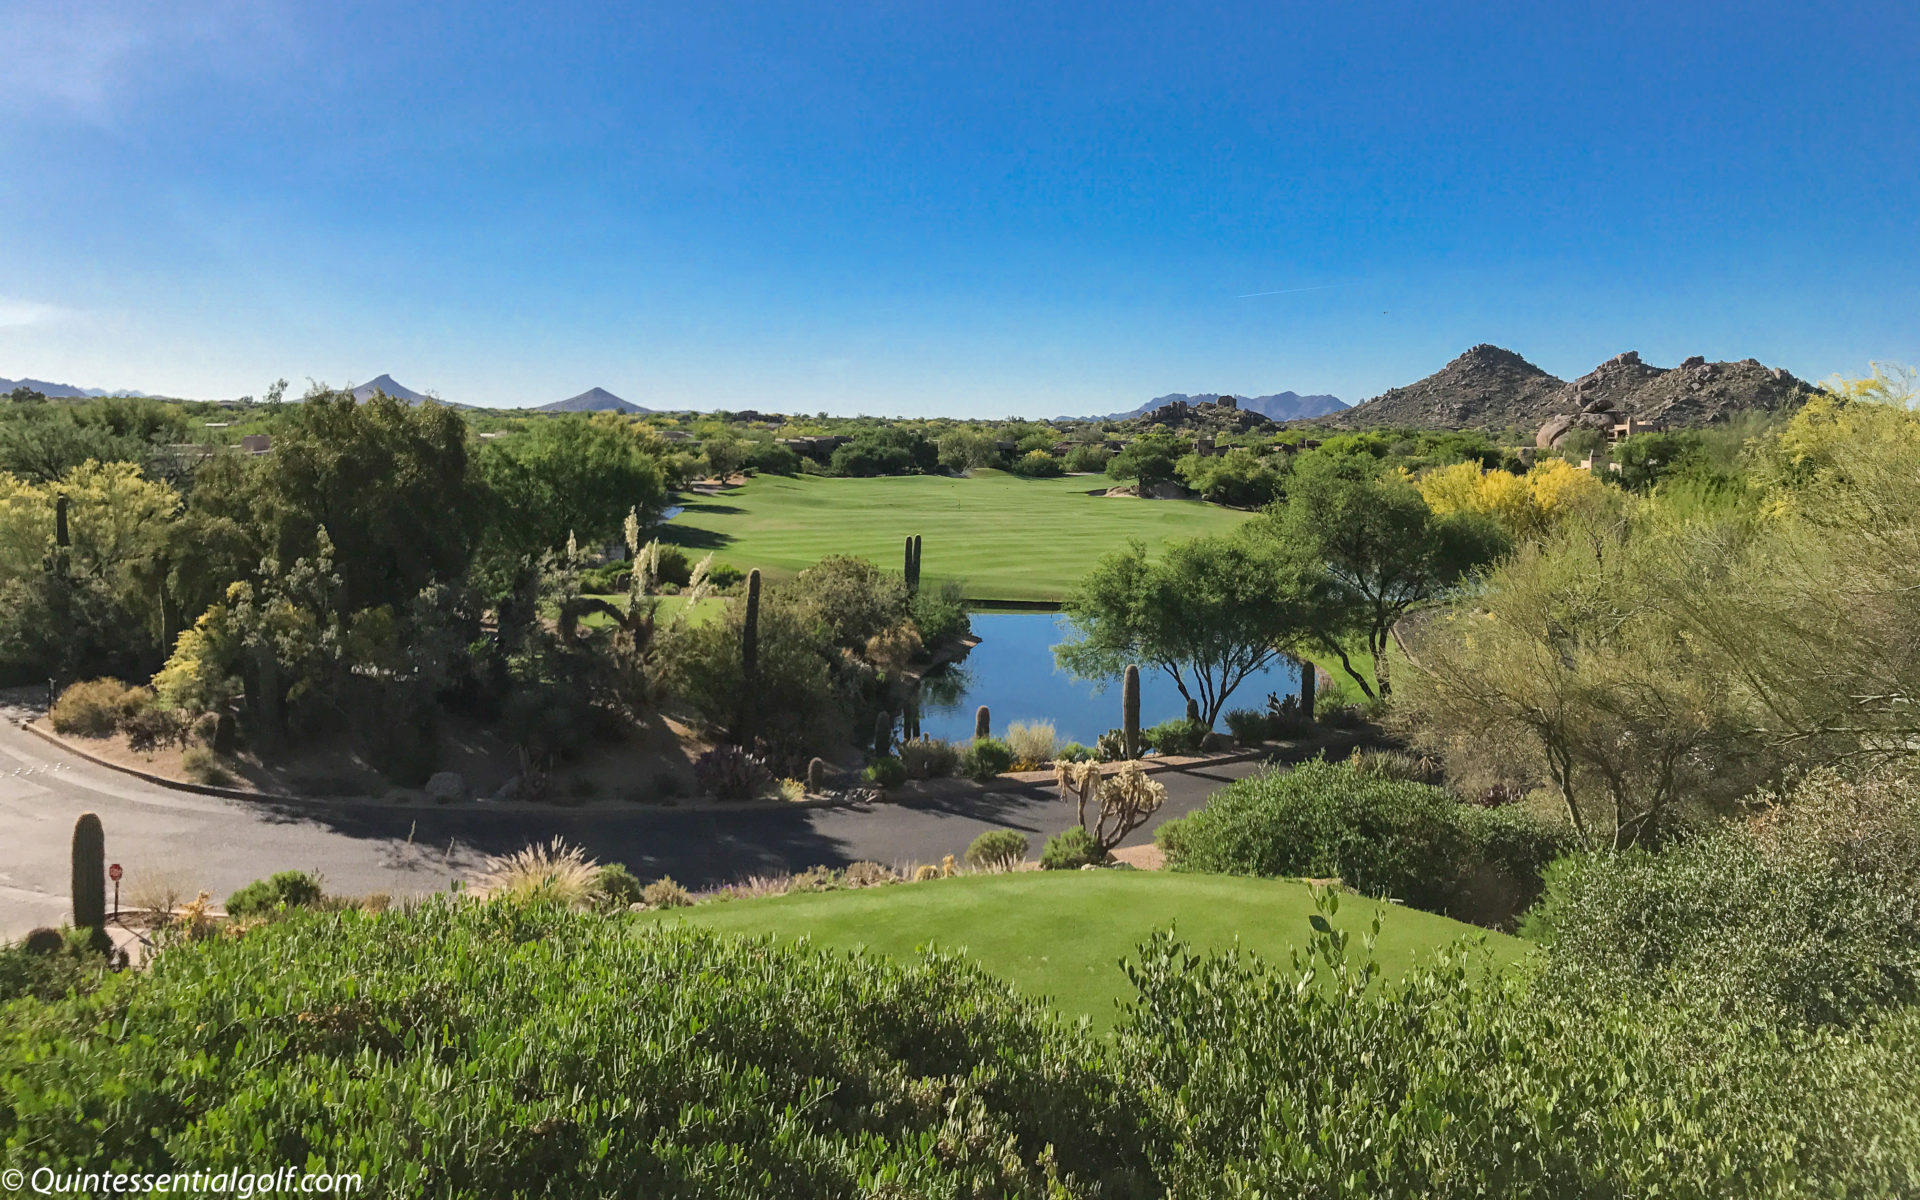 Sixth Hole Back Tees Boulders South Course, Scottsdale, AZ